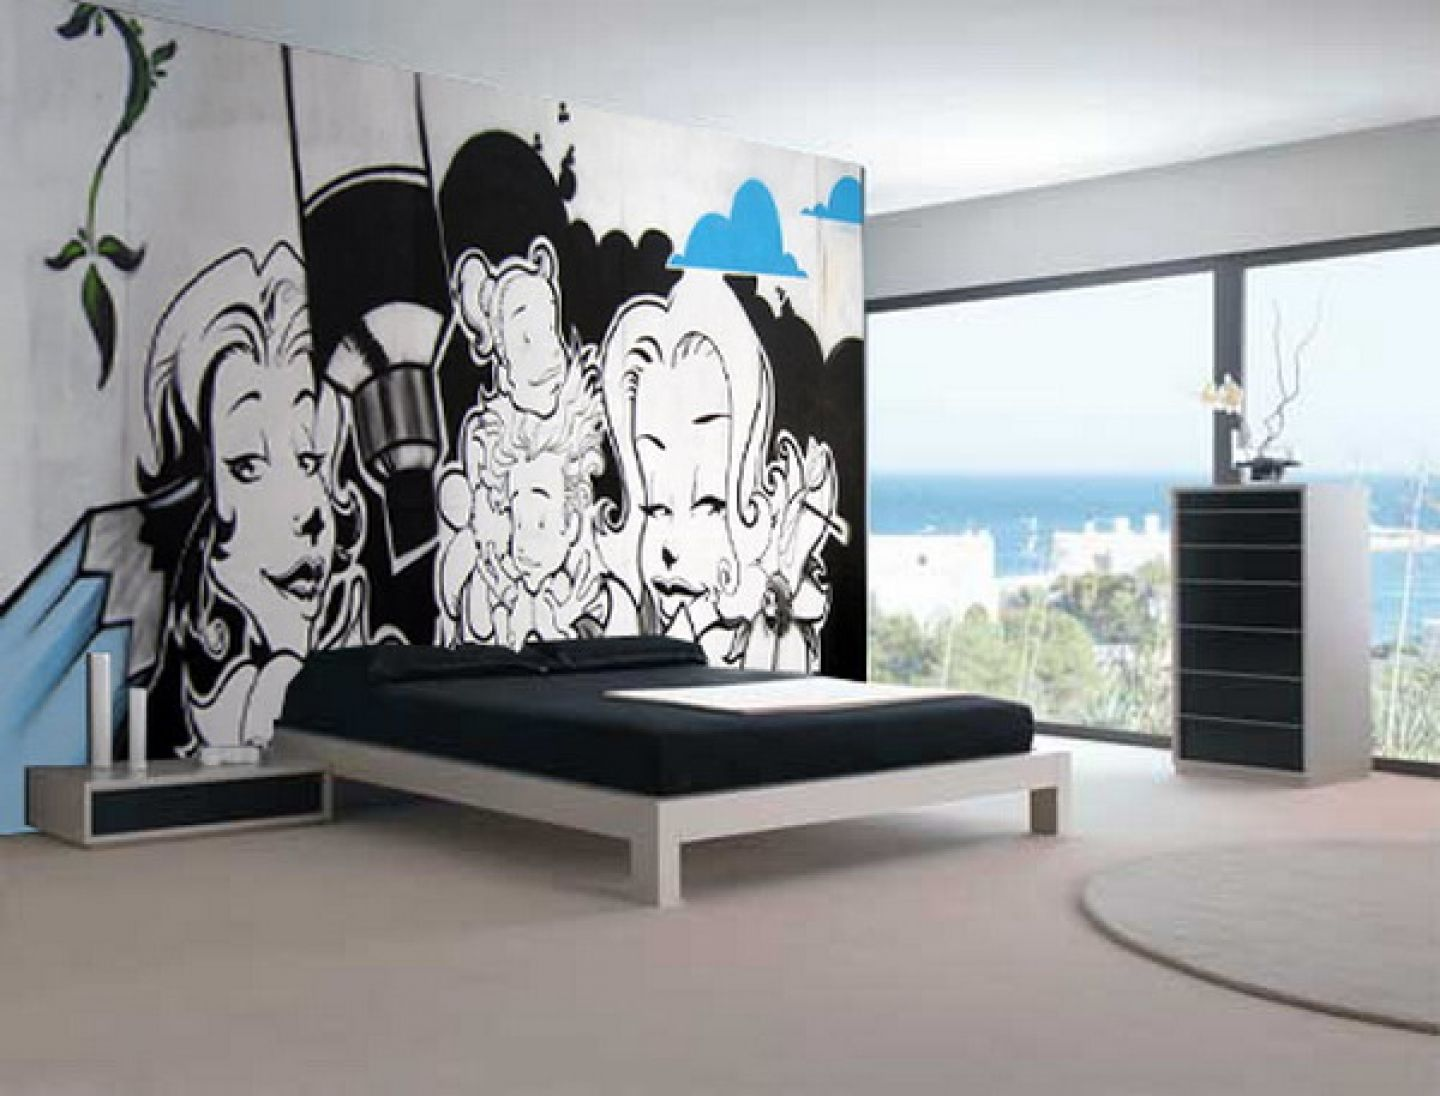 Graffiti wall art bedroom - Abstract Black And White Graffiti In Cool Bedroom Wall Stickers Murals Paint Designs Ideas